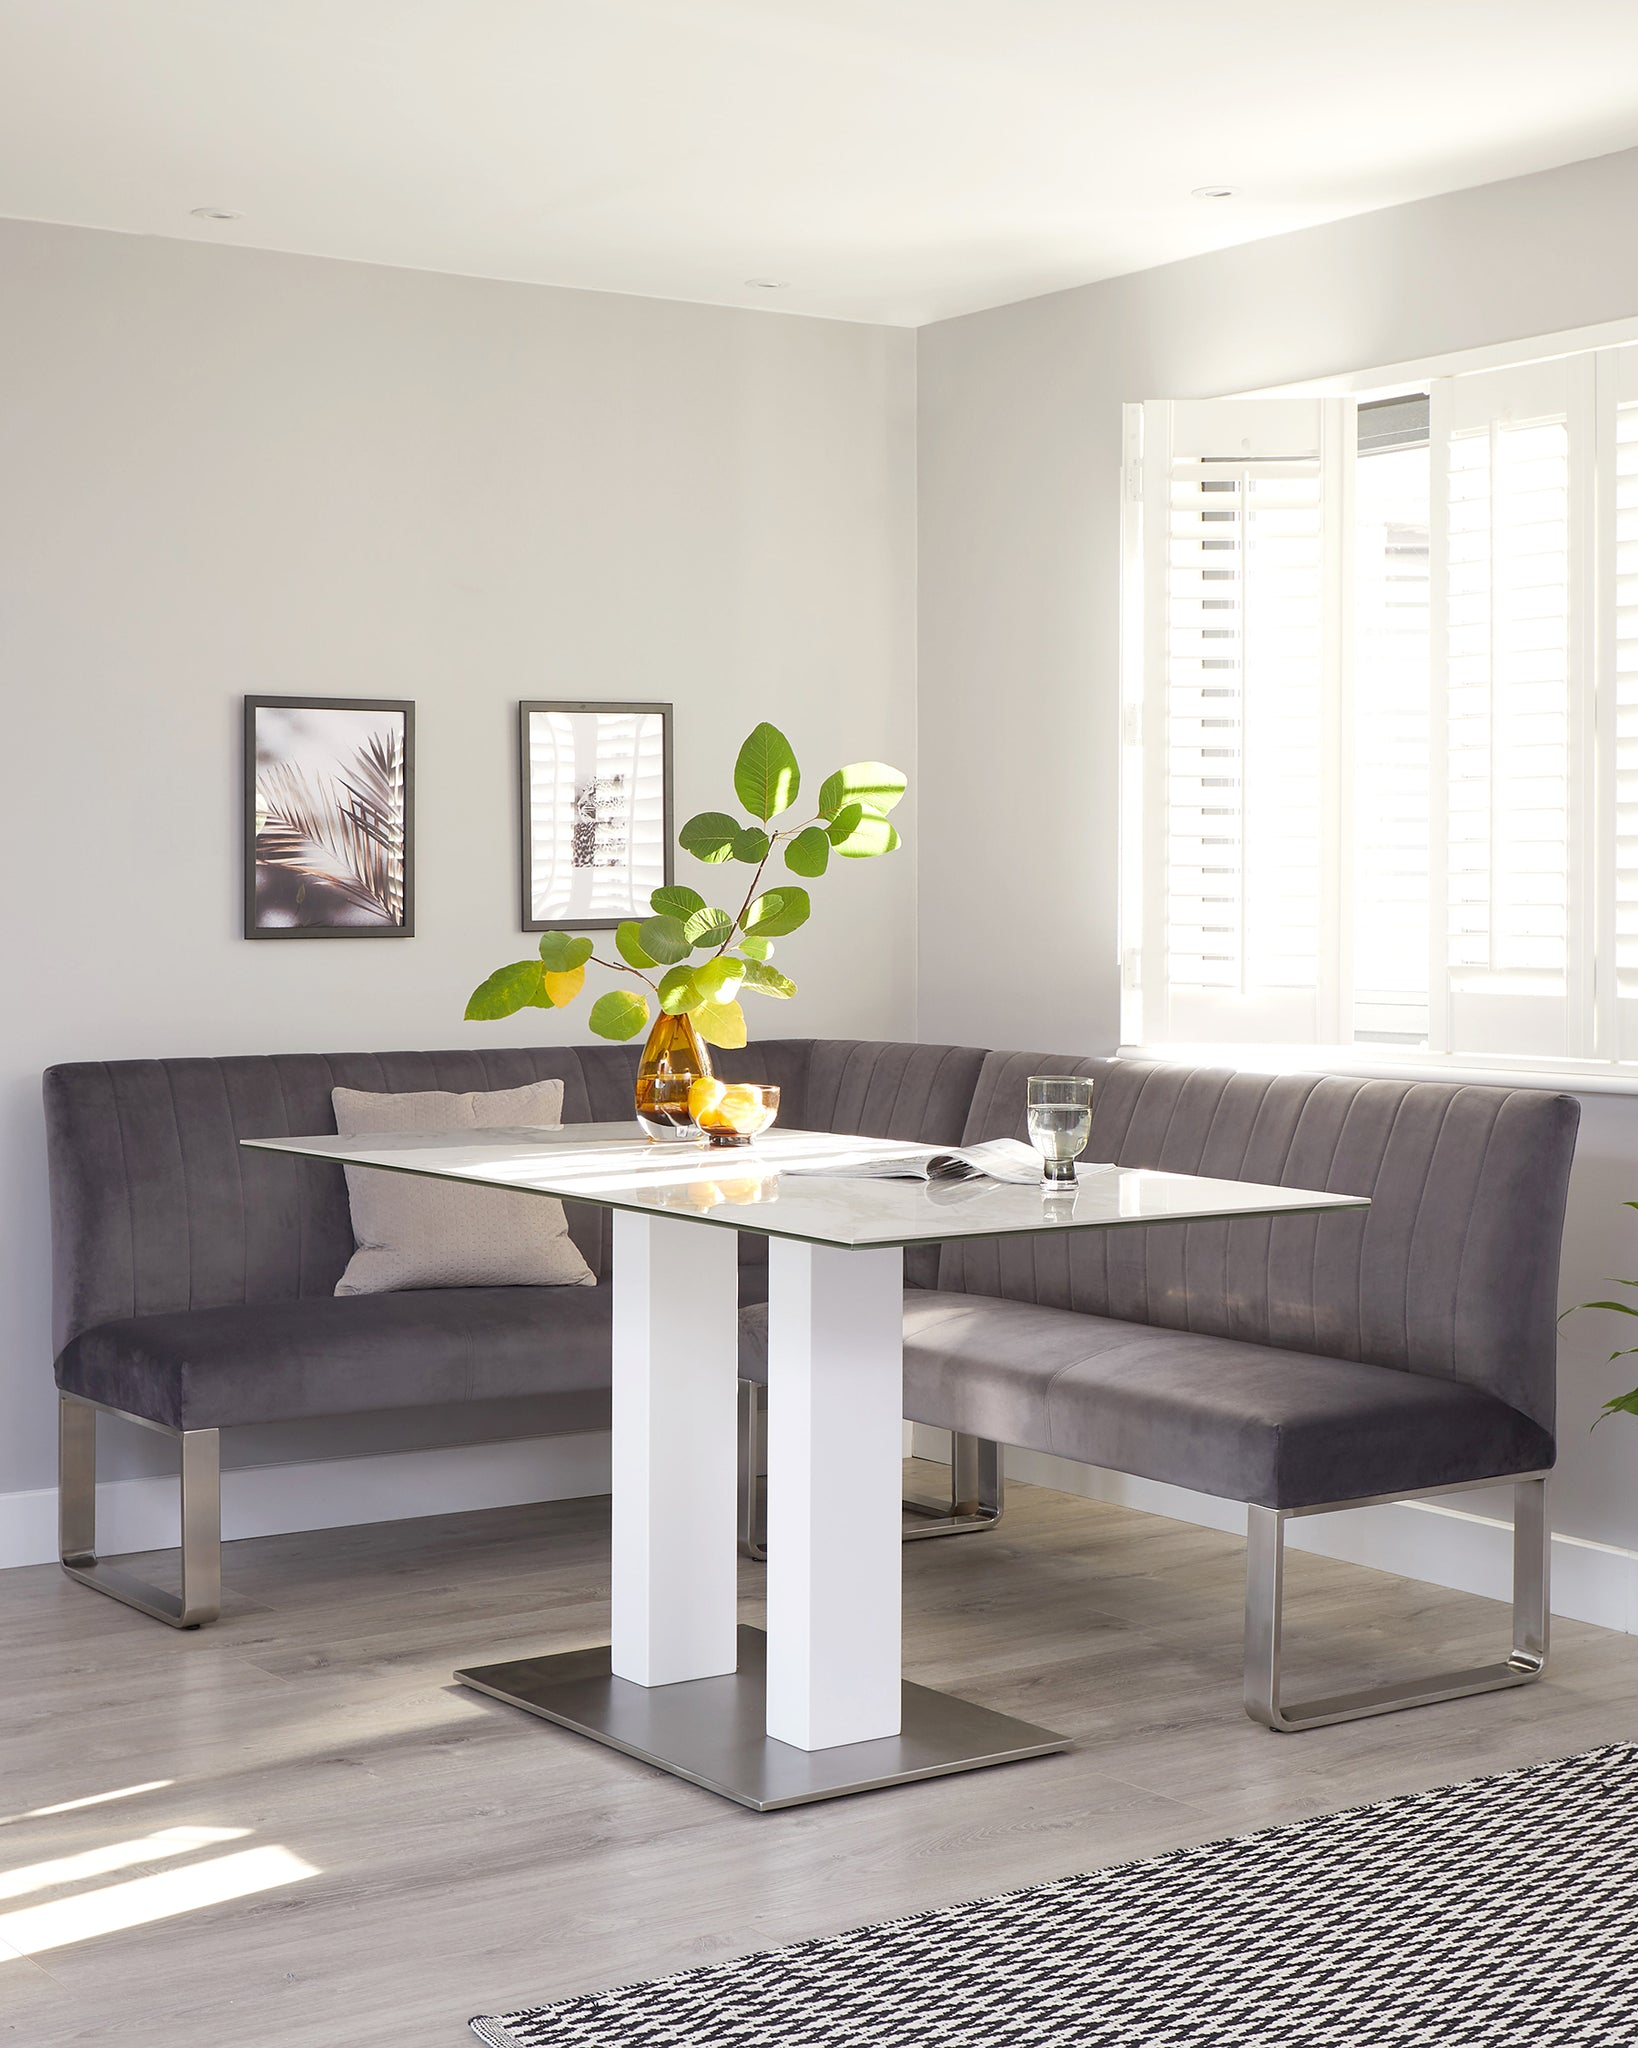 Mia 6 Seater White Ceramic Marble Dining Table